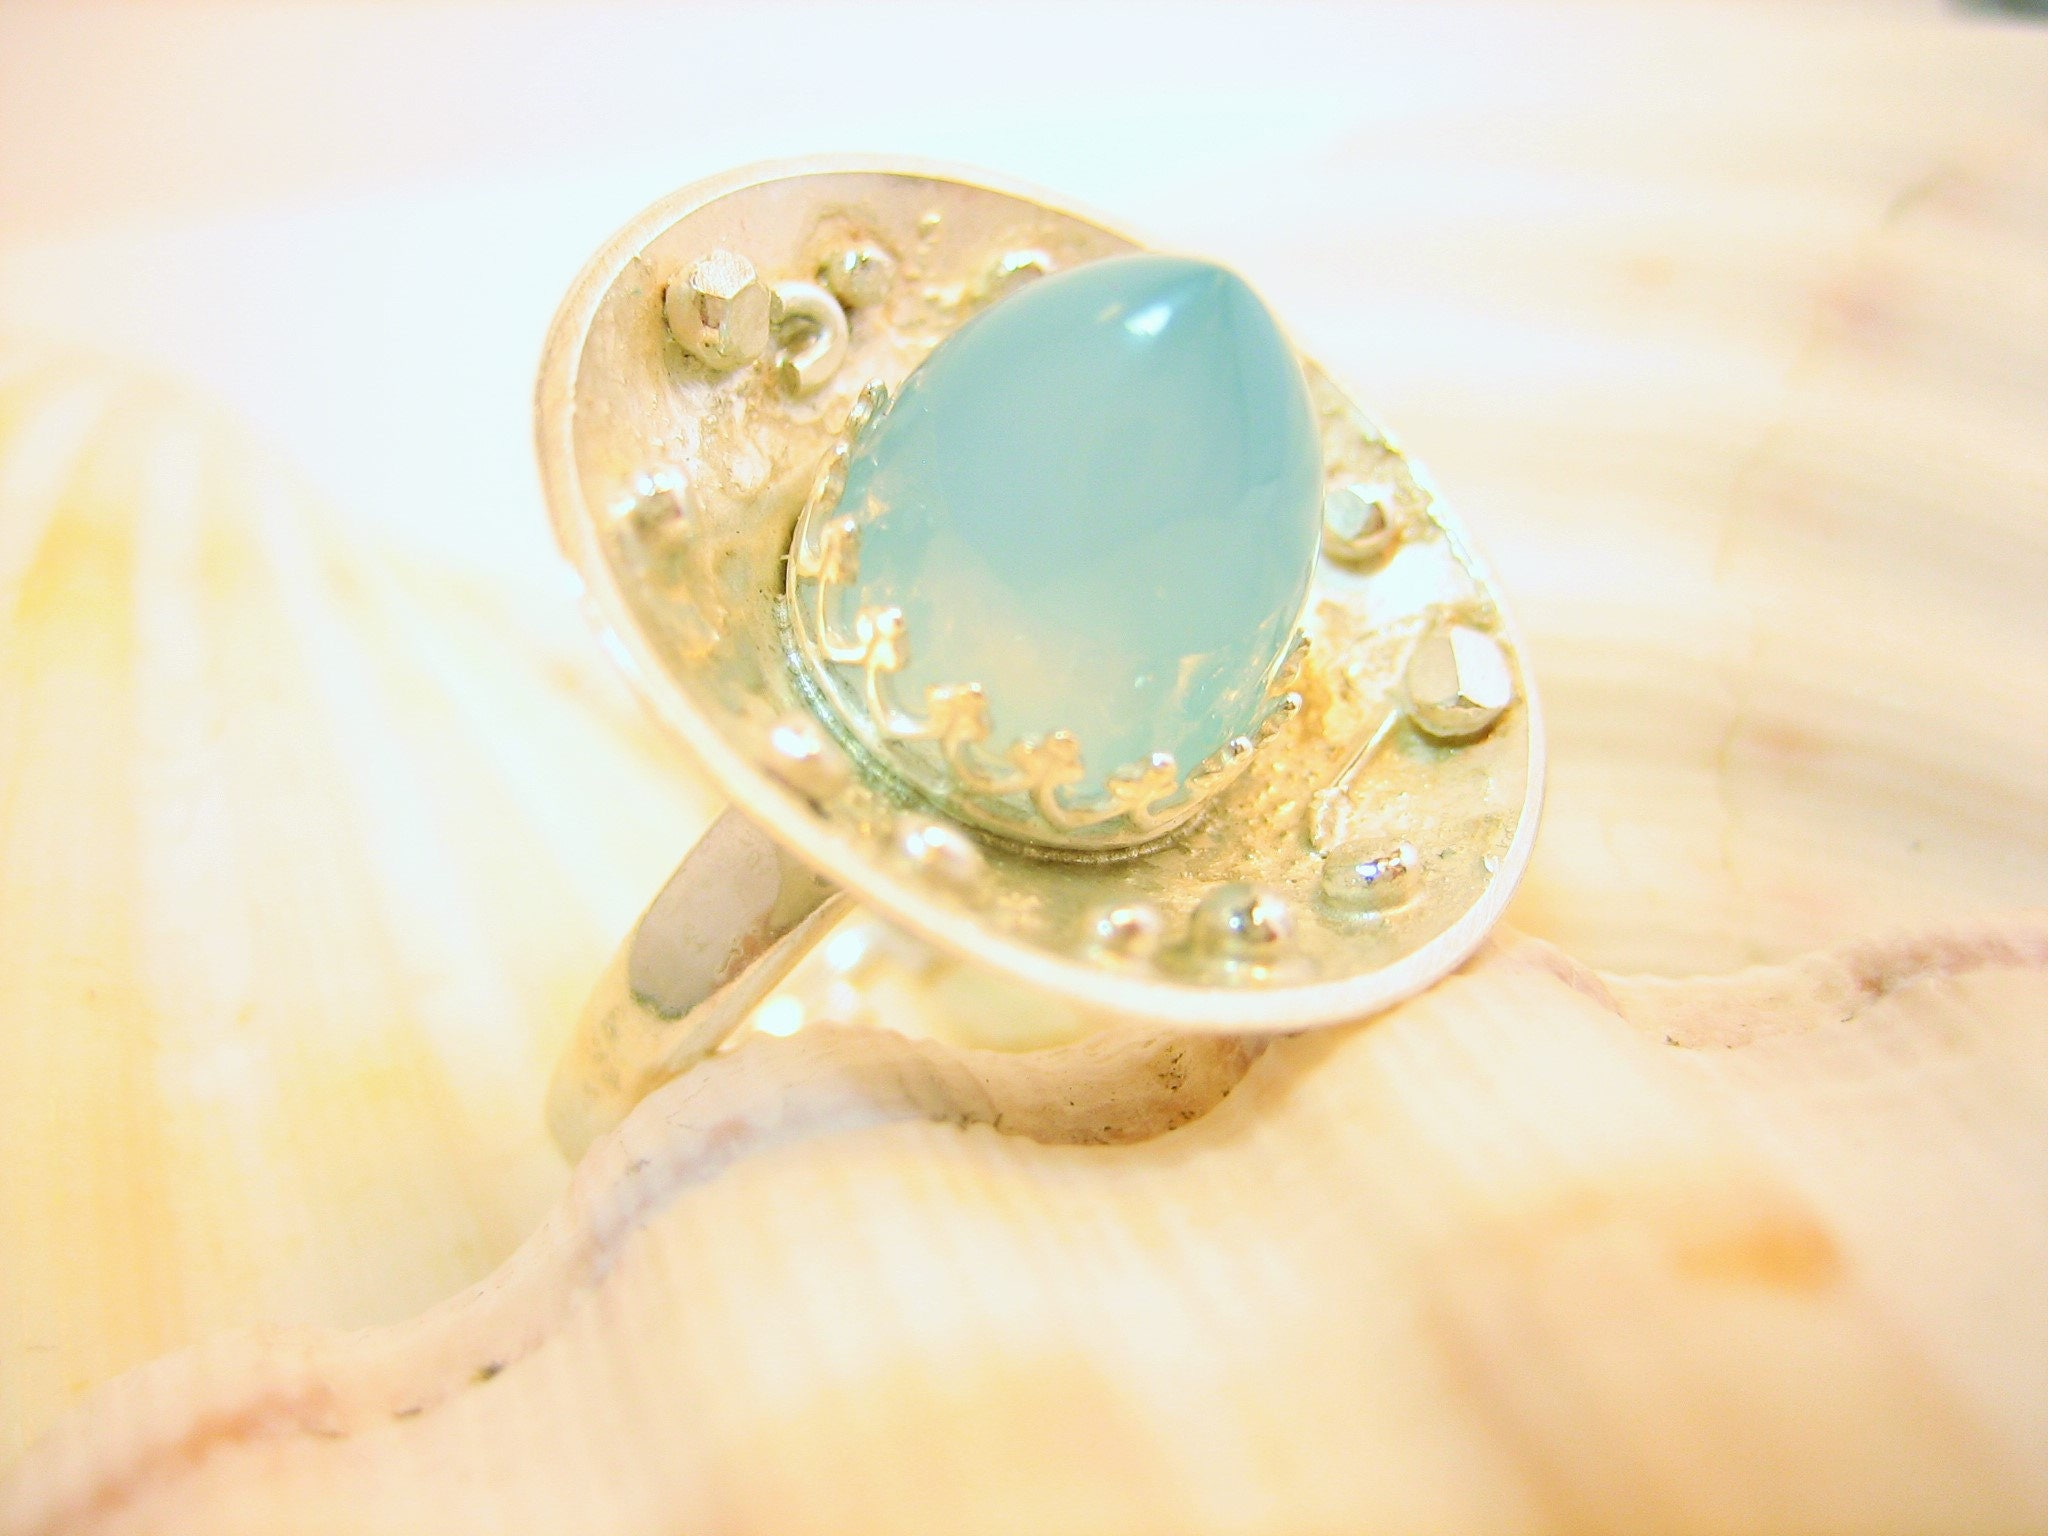 Large blue bullet chalcedony adjustable ring, silver textured ring with large blue stone, dreamy blue gem and silver ring, gift for her